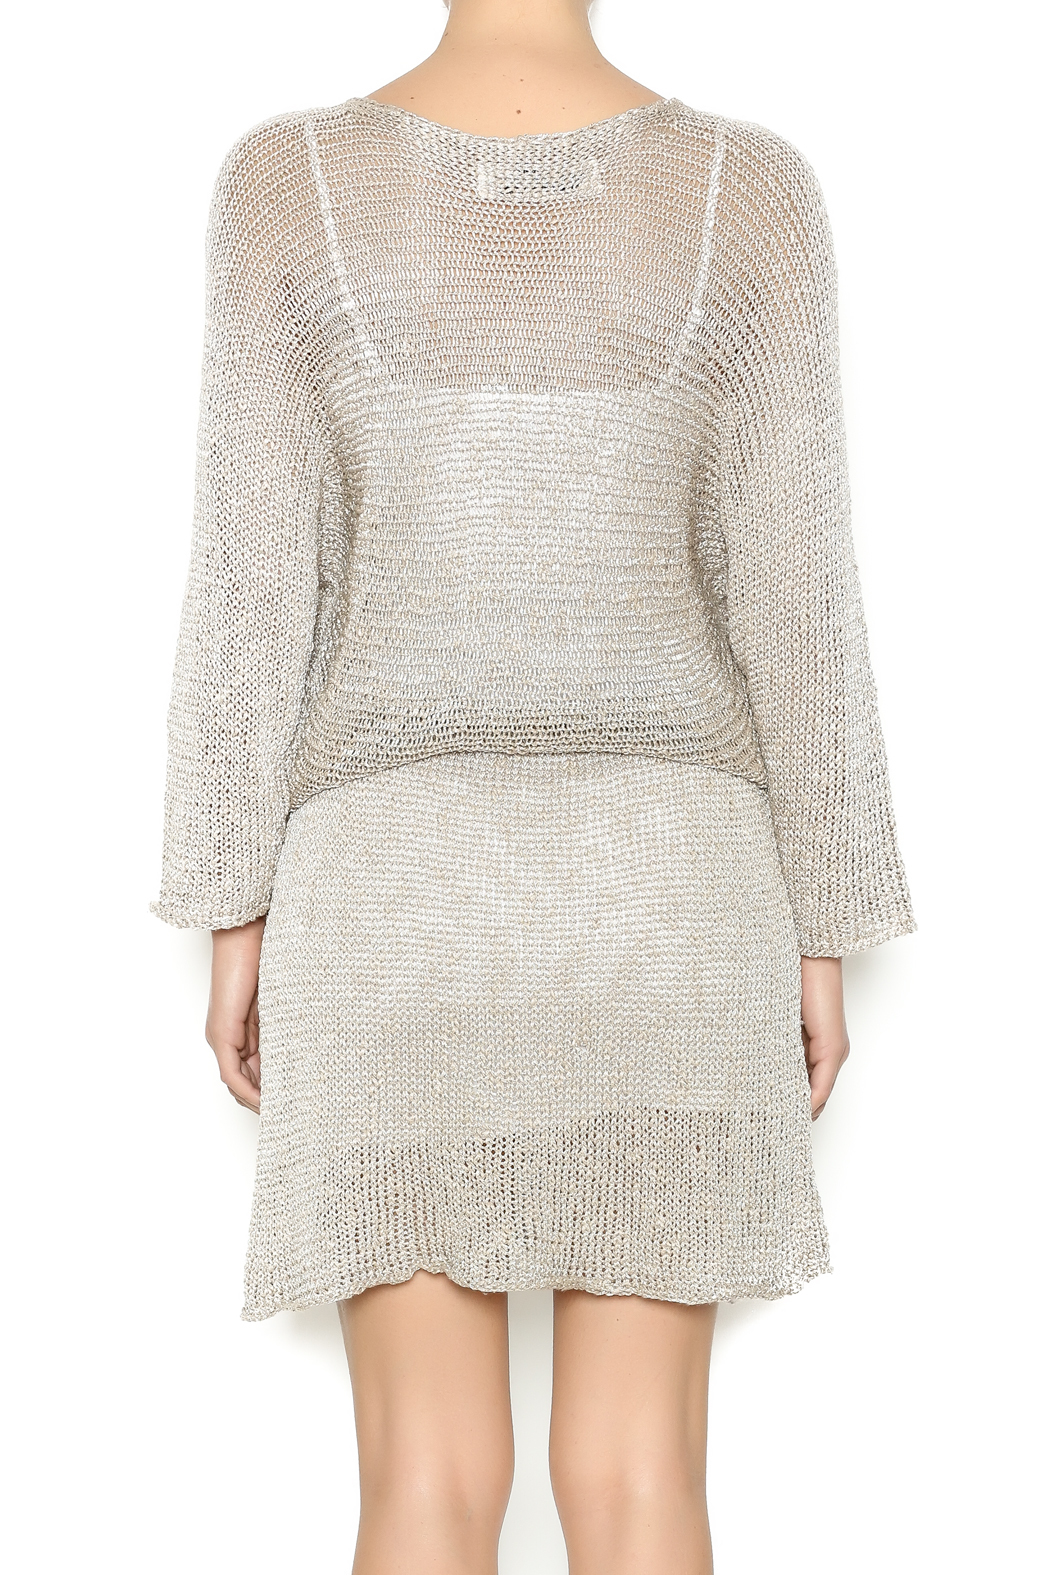 DC KNITS Champagne Sheen Dress - Back Cropped Image